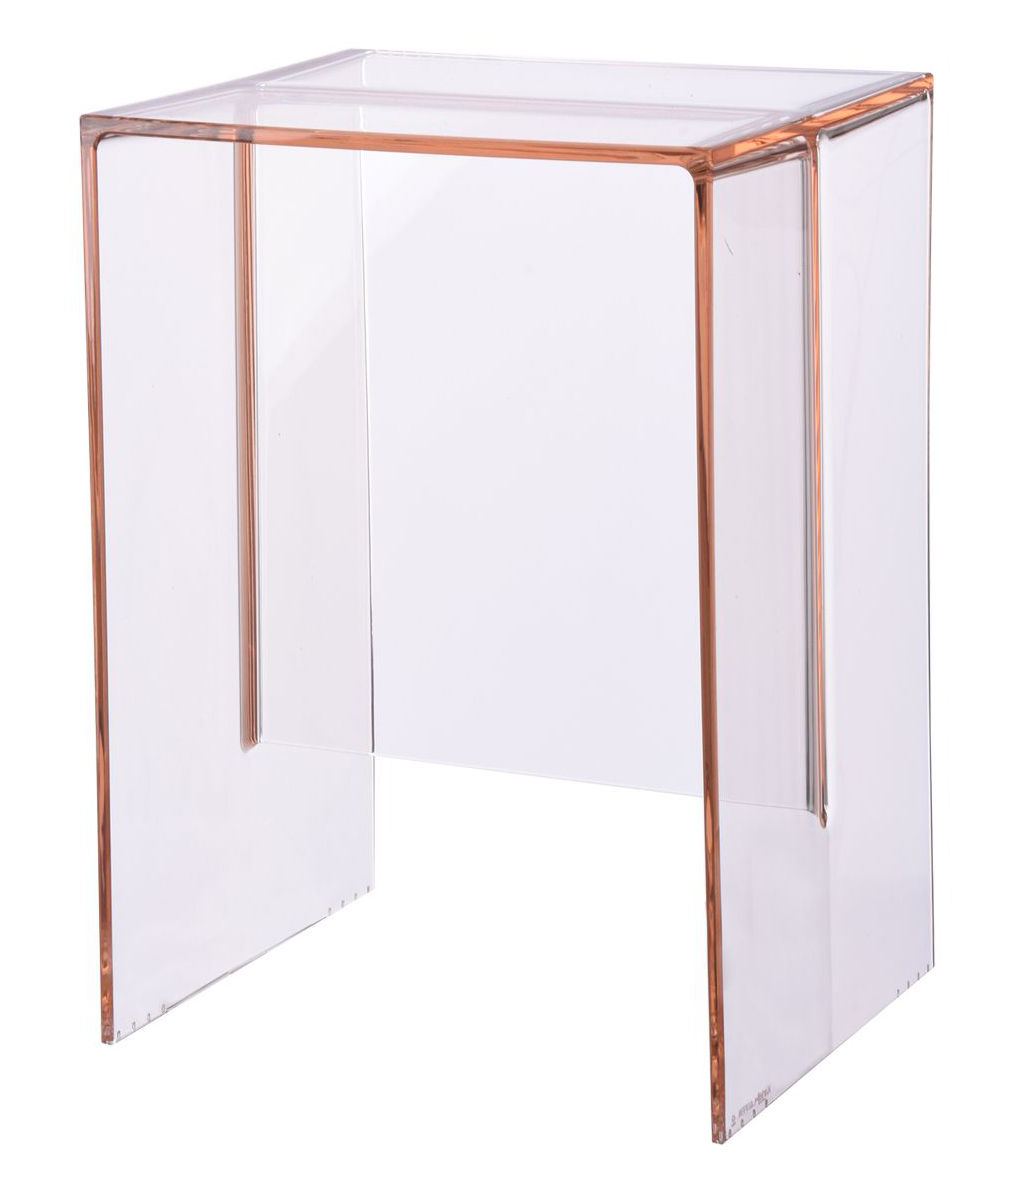 max beam end table stool nude pink by kartell. Black Bedroom Furniture Sets. Home Design Ideas